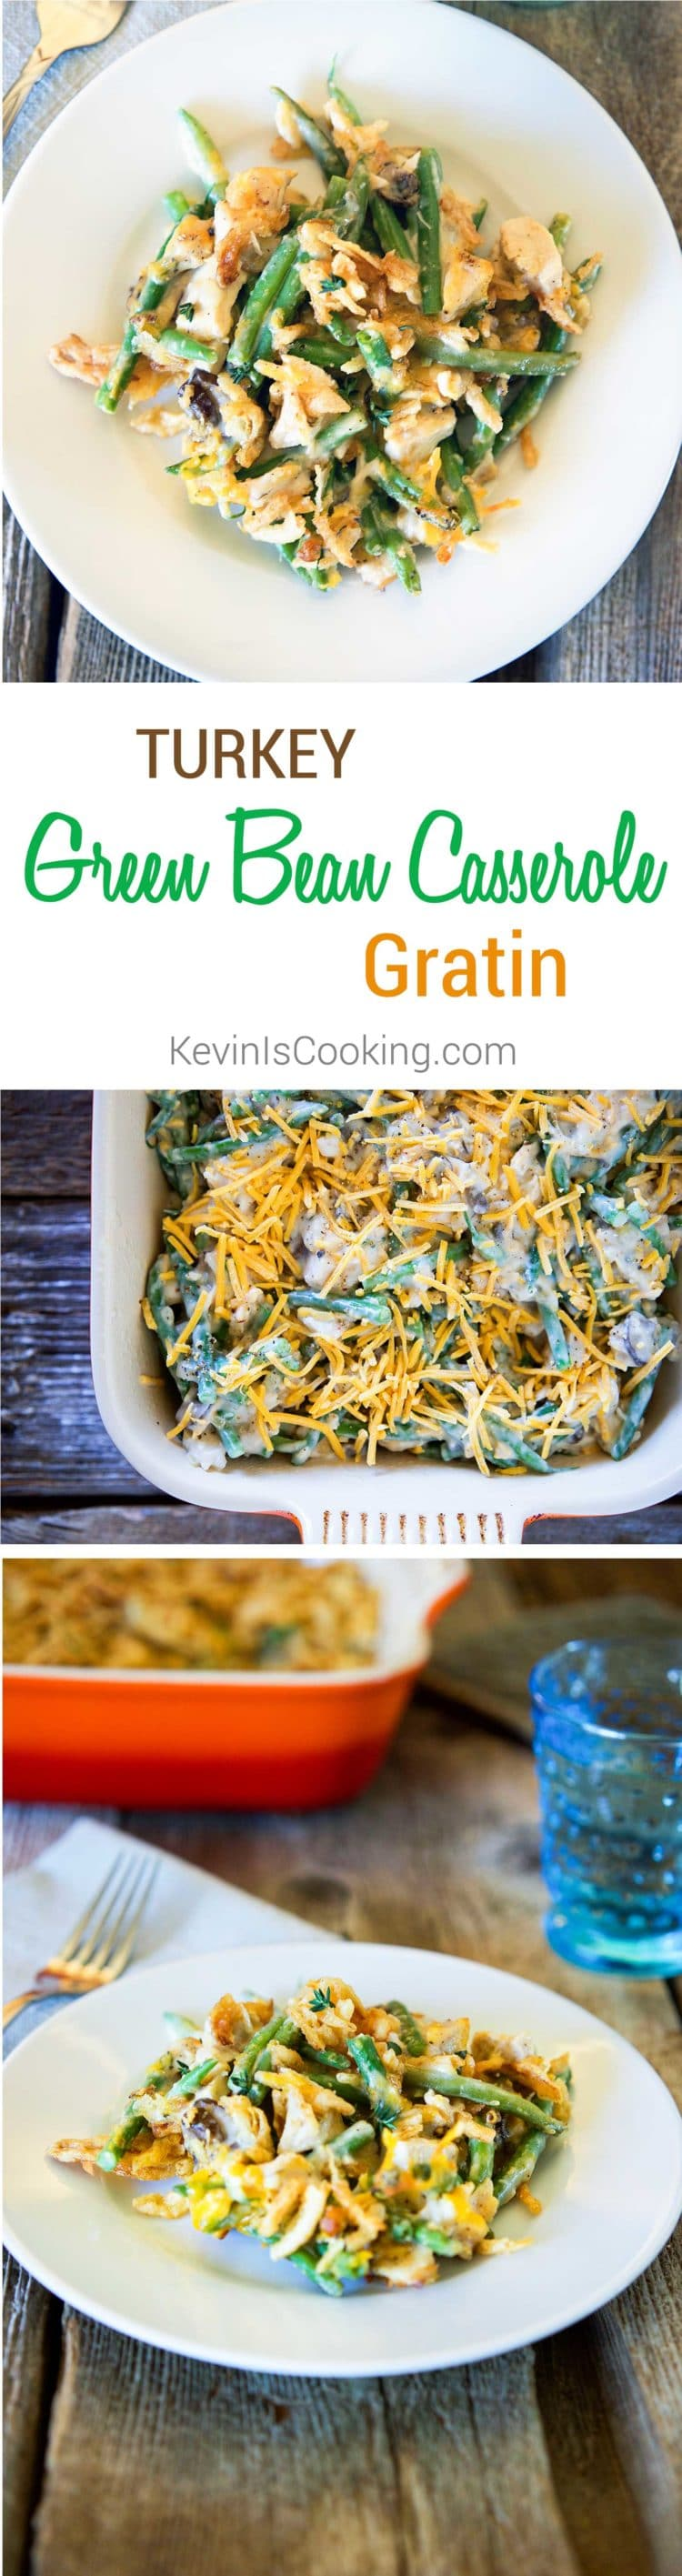 How about using holiday turkey leftovers and make the traditional green bean casserole with cheddar cheese for one amazing and hearty comfort food meal.